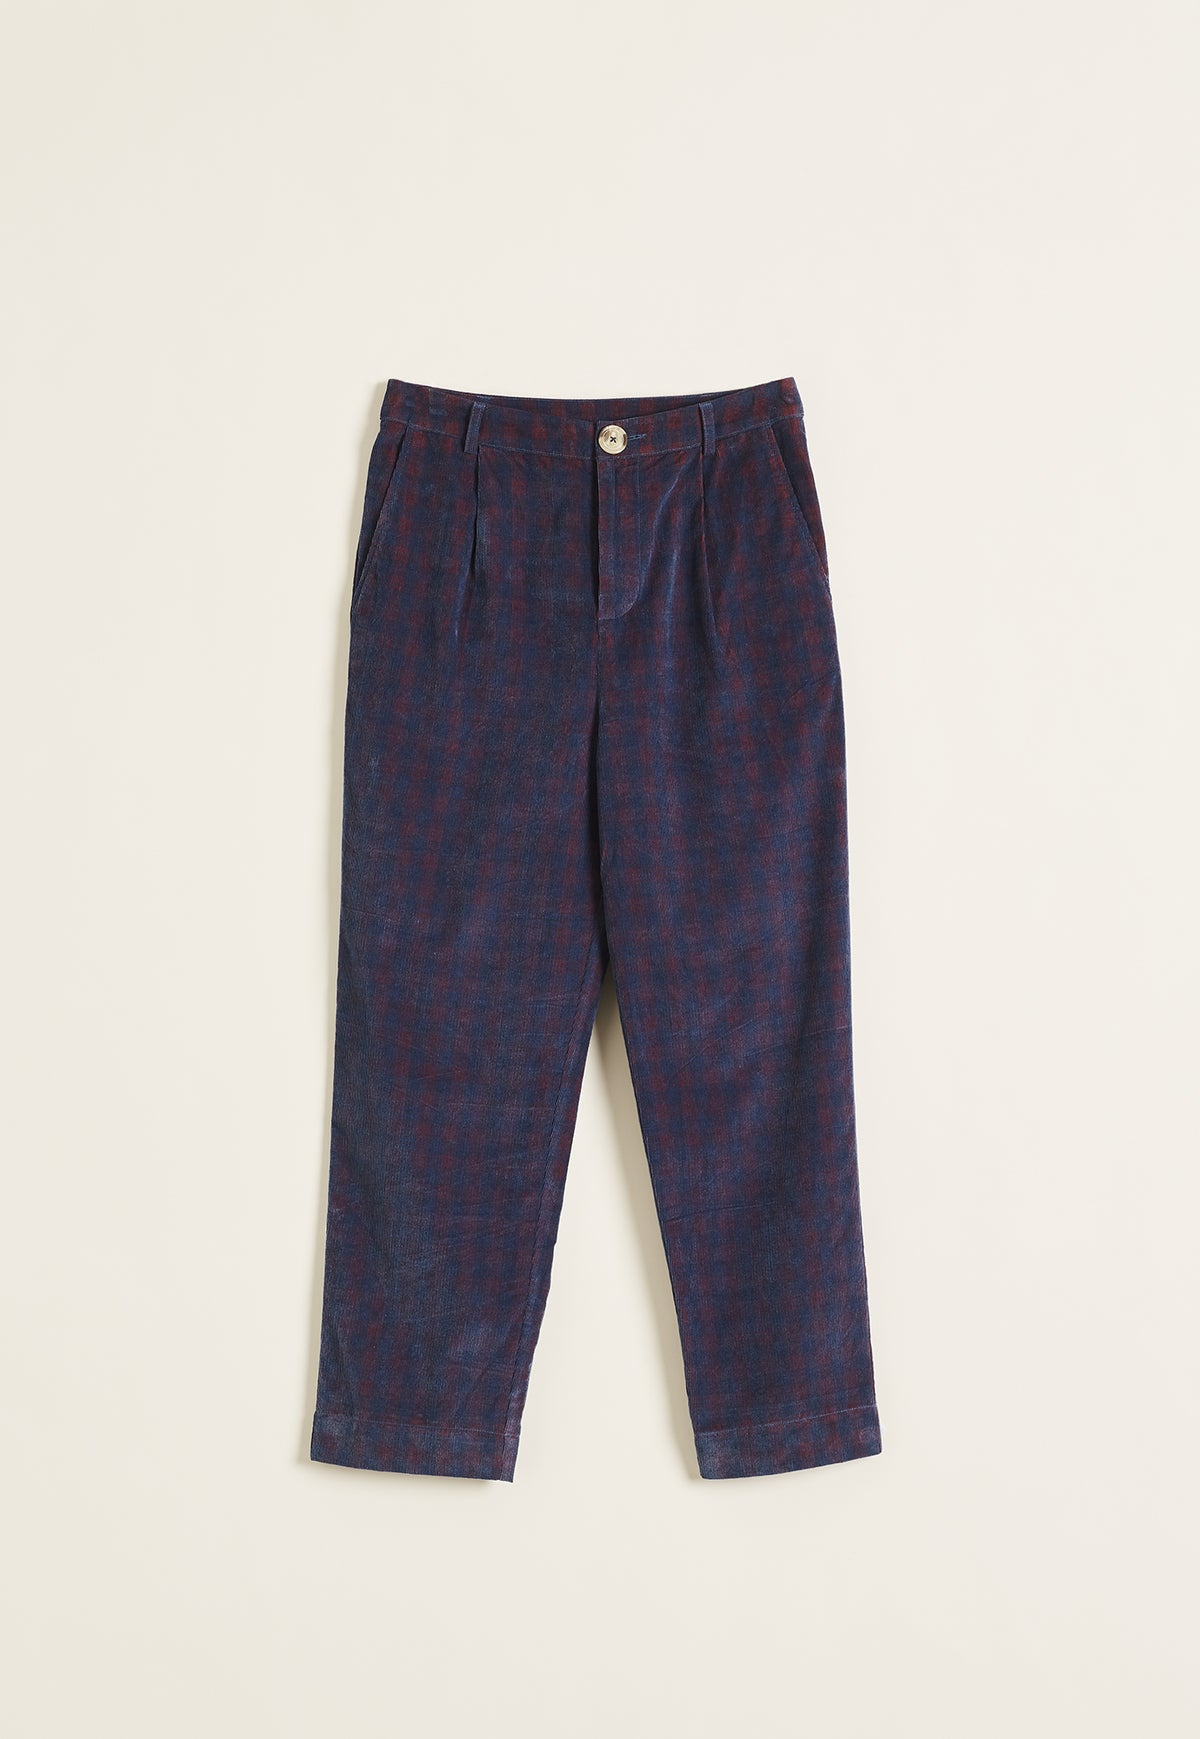 Stirling Pant - Red Corduroy Check